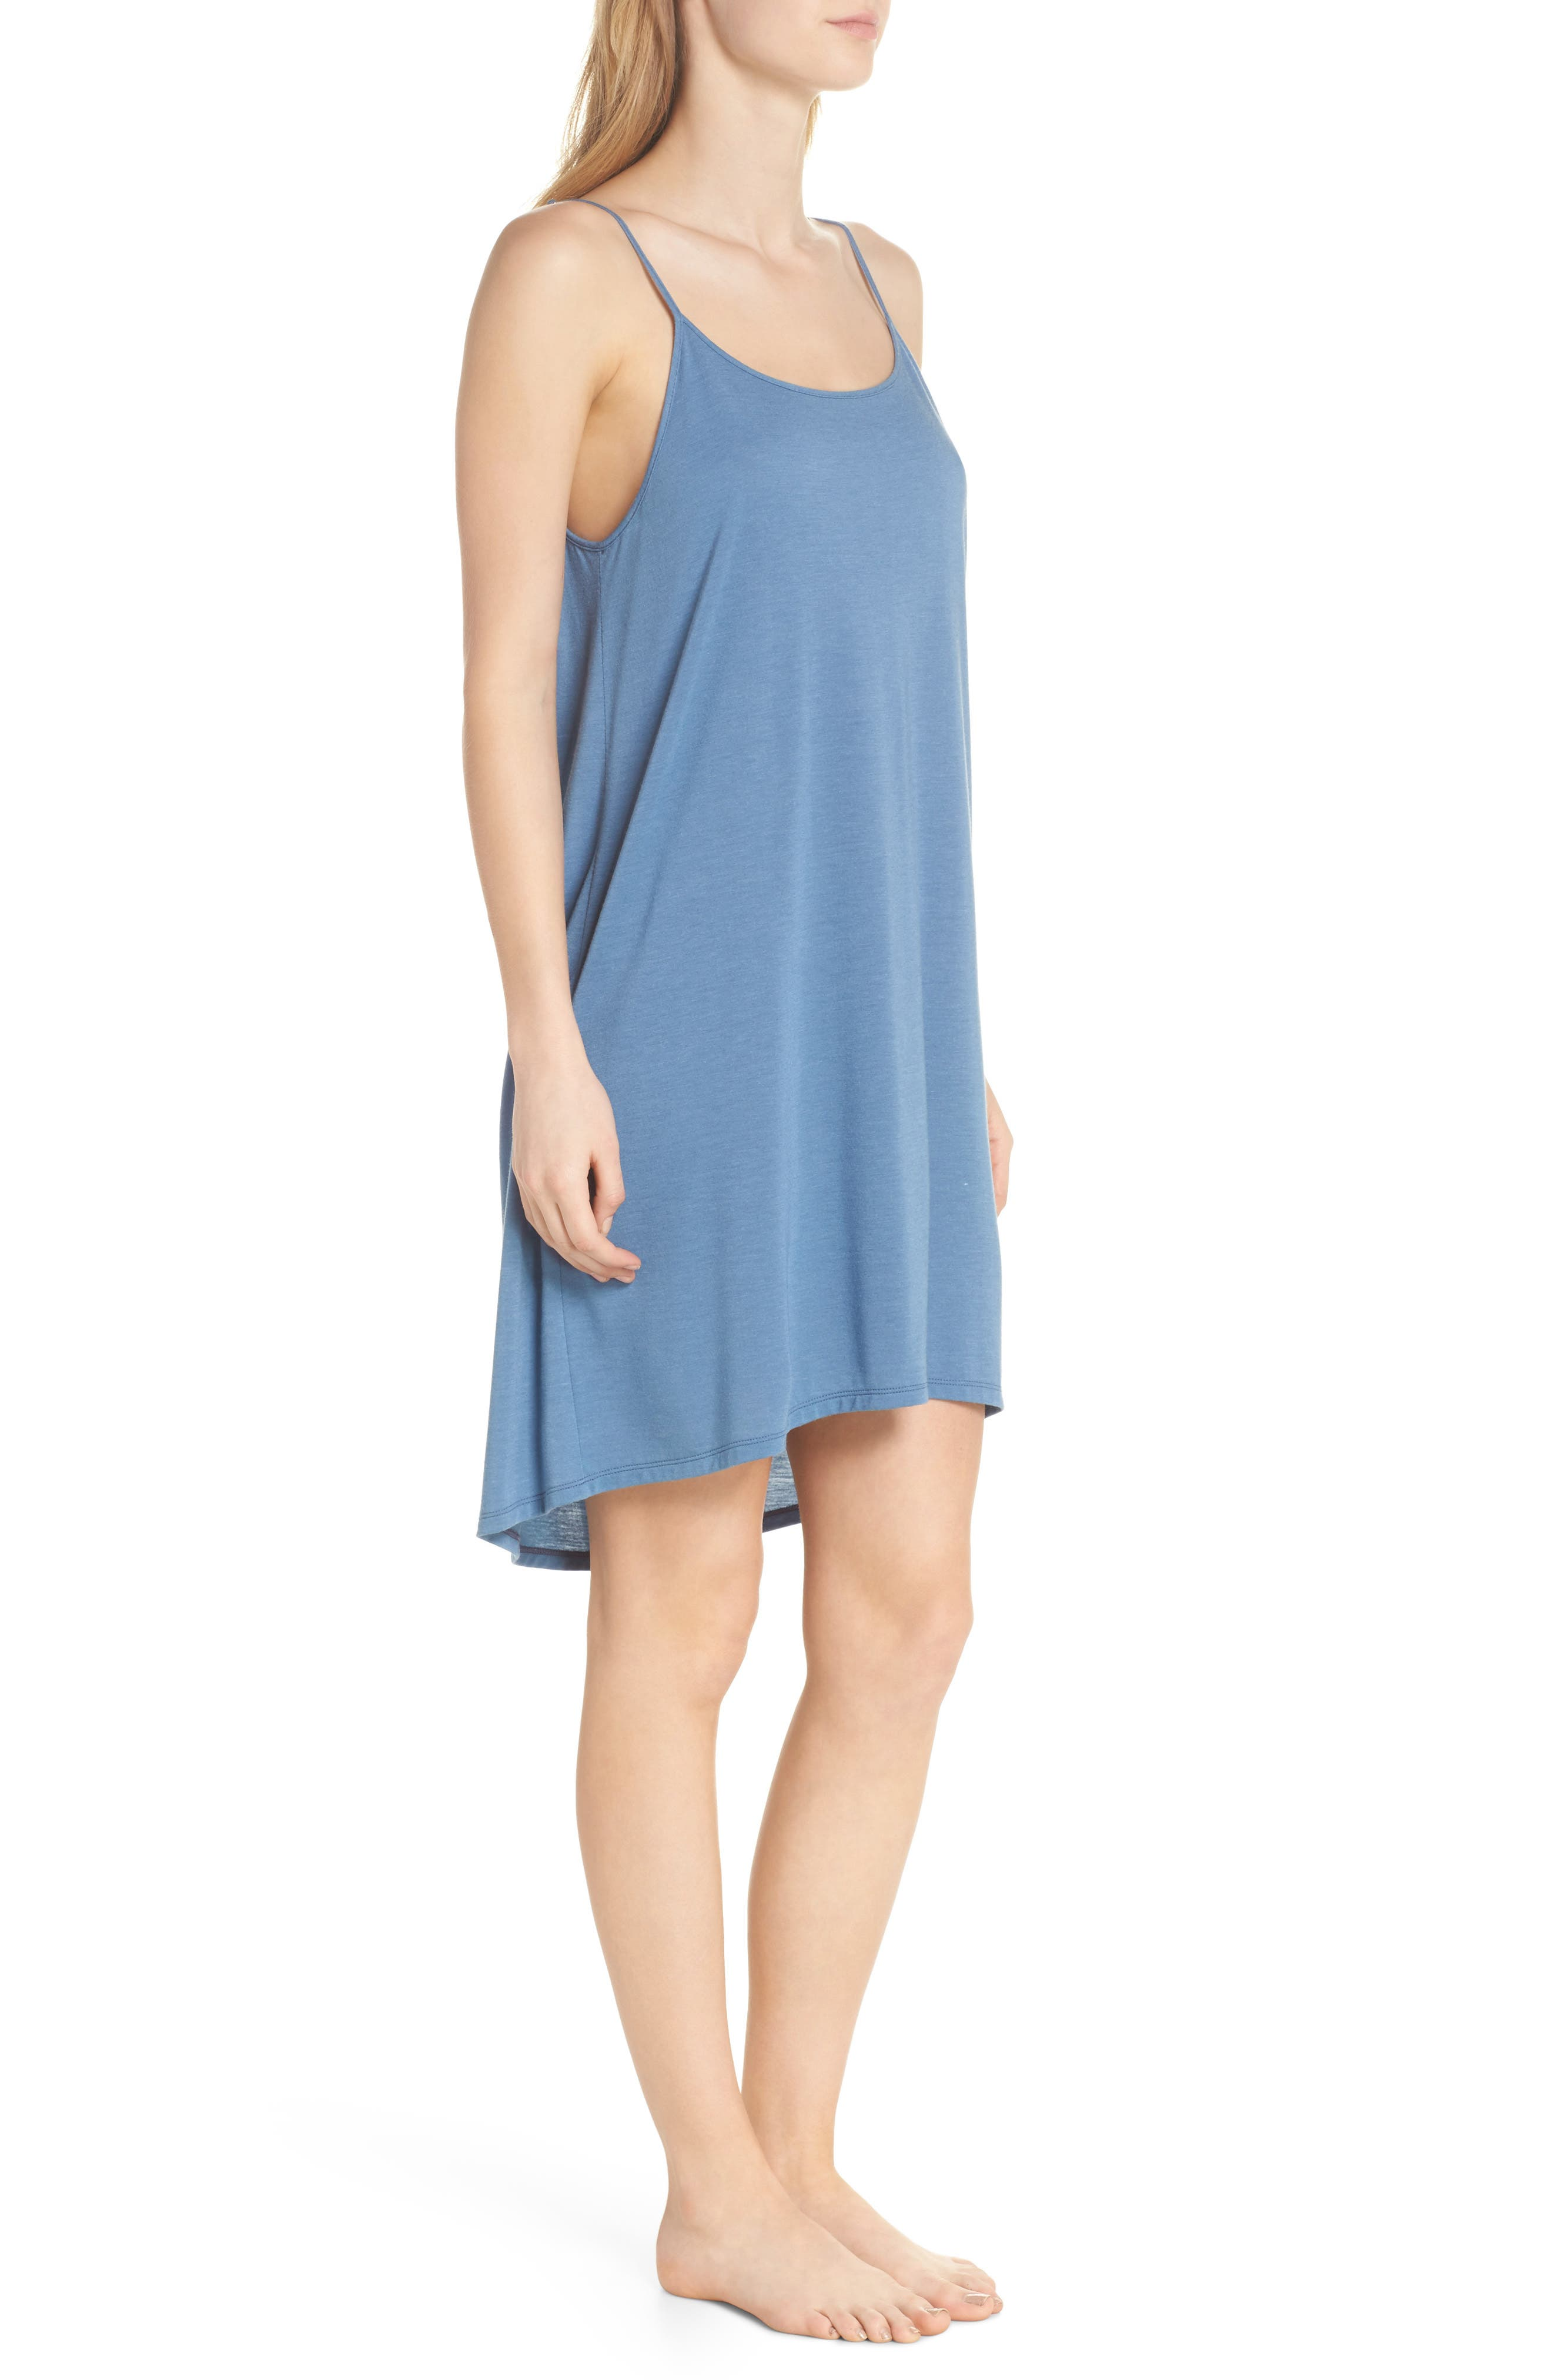 Heather Tees Chemise,                             Alternate thumbnail 3, color,                             Bsq Ht Blue Shadow